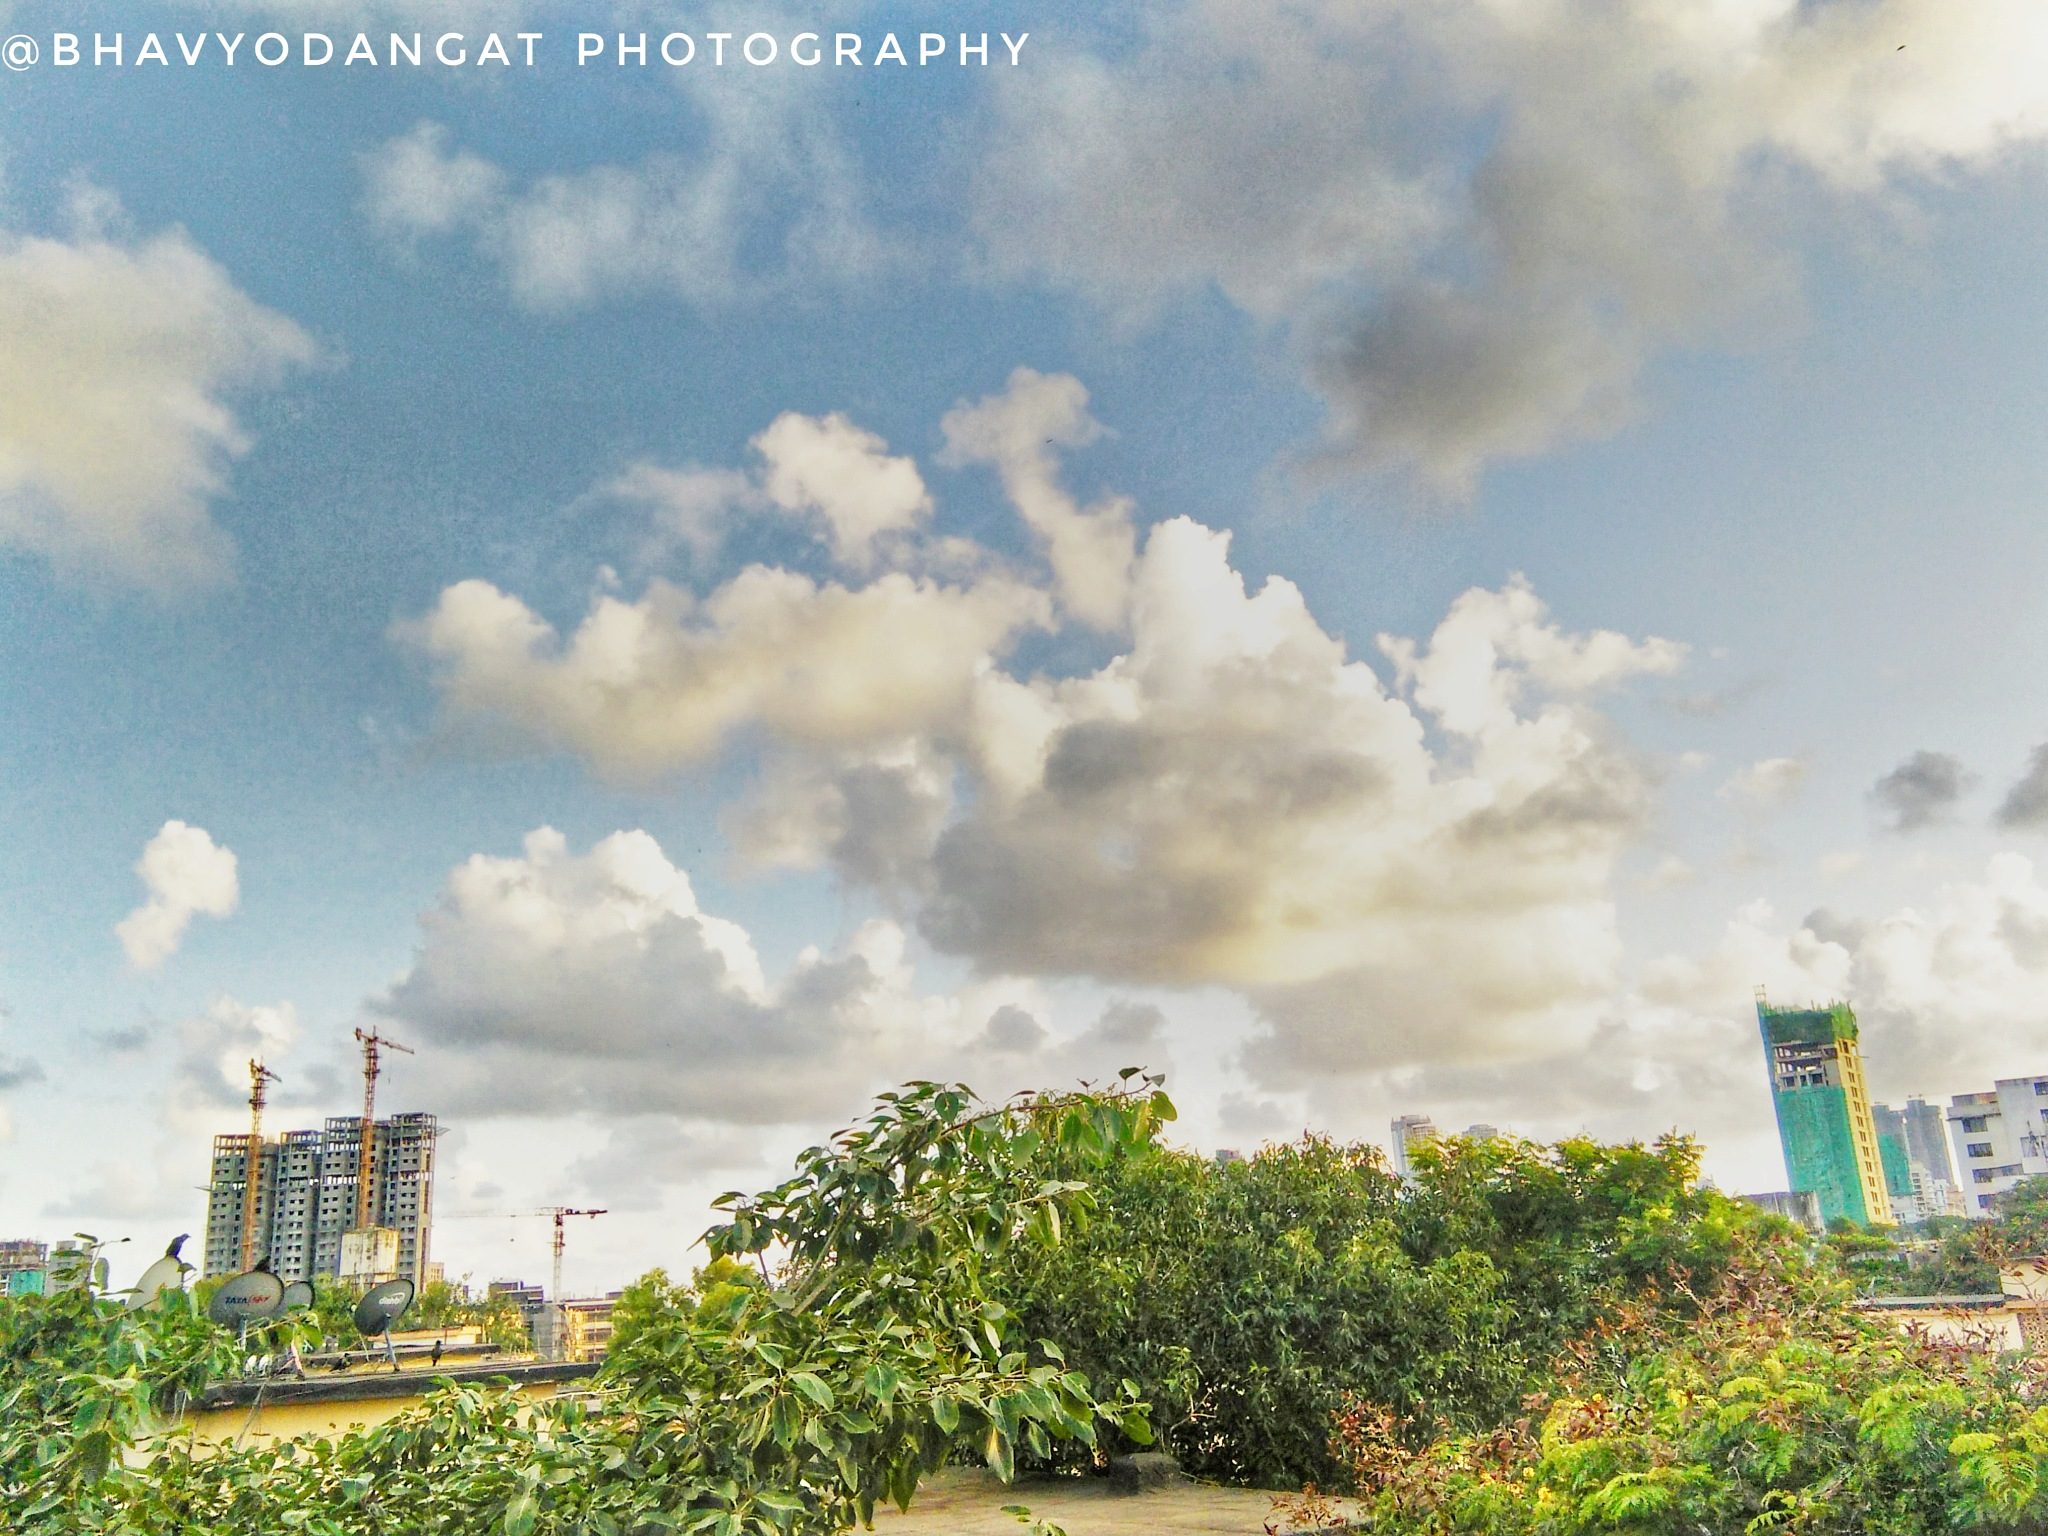 Untitled by Bhavesh Dangat